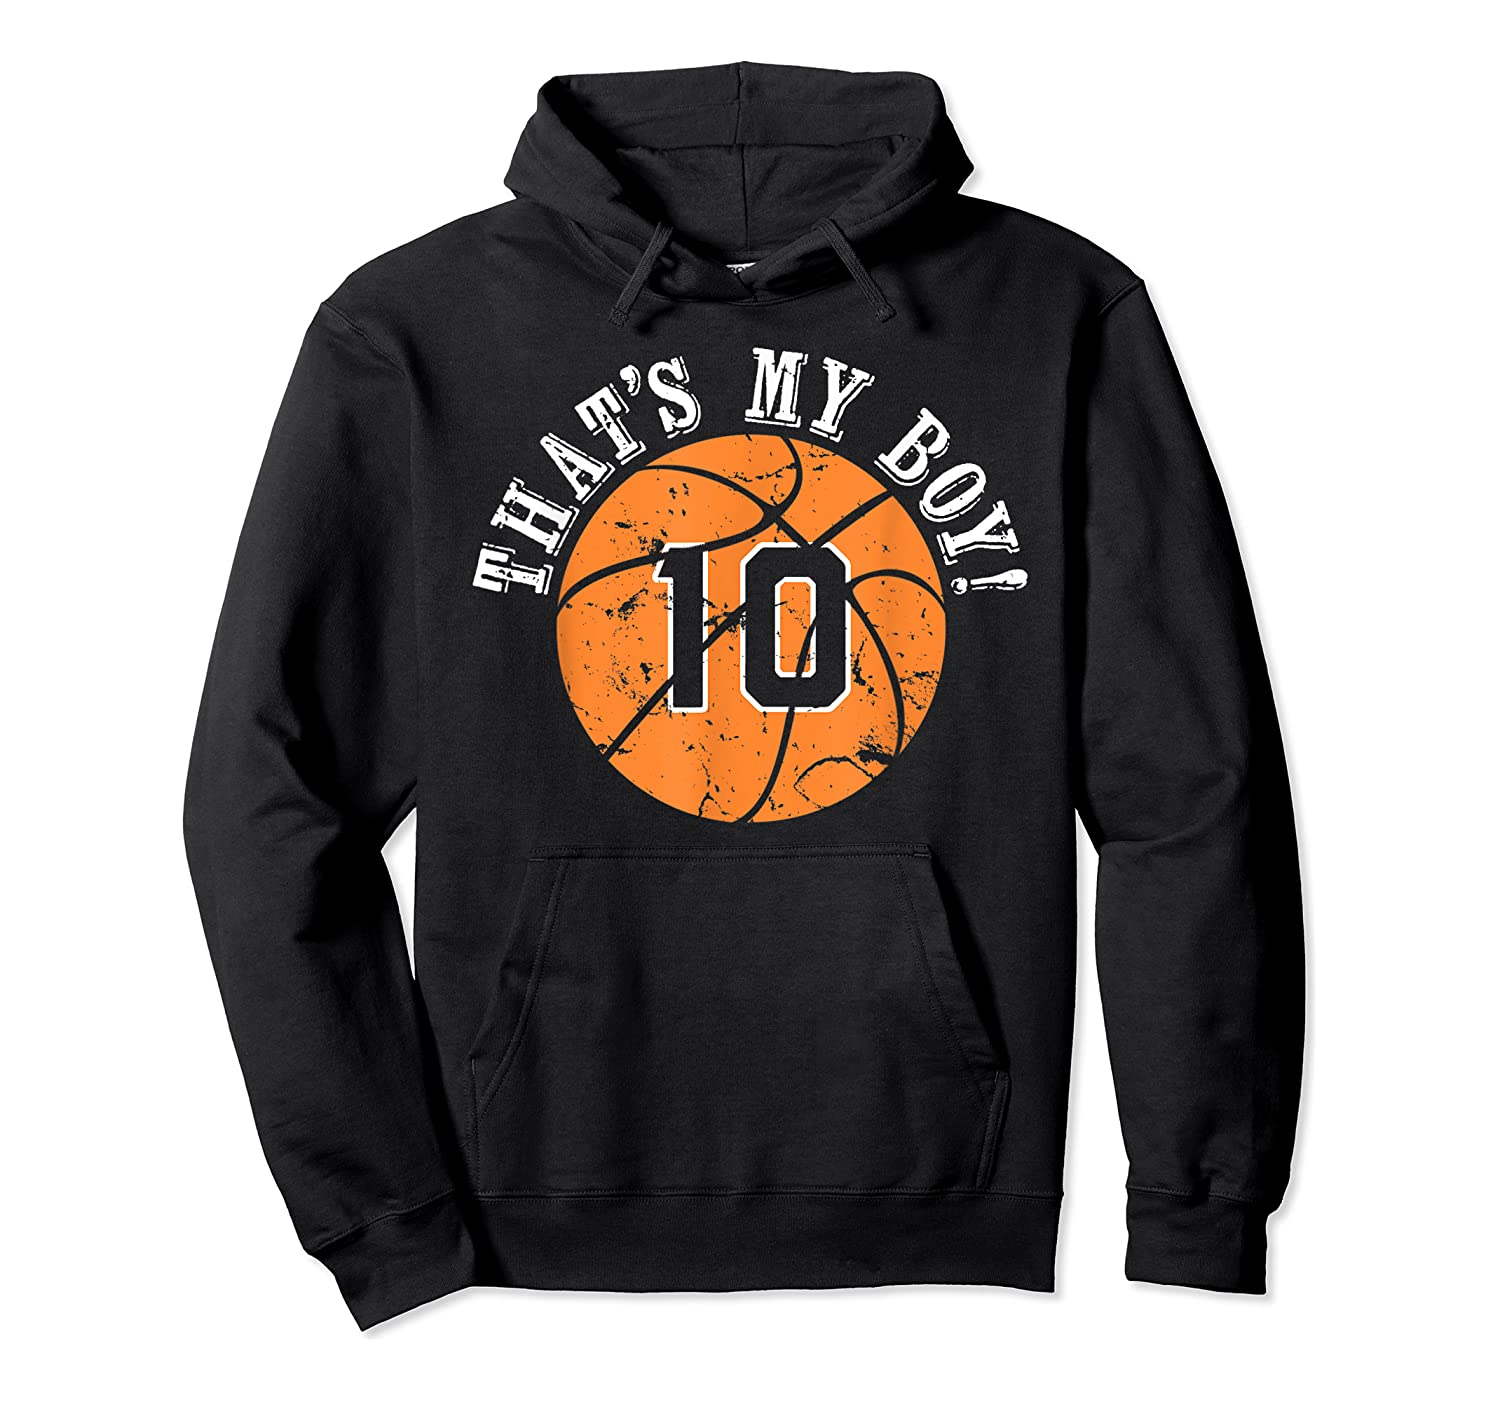 Unique That's My Boy #10 Basketball Player Mom Or Dad Gifts T-shirt Unisex Pullover Hoodie